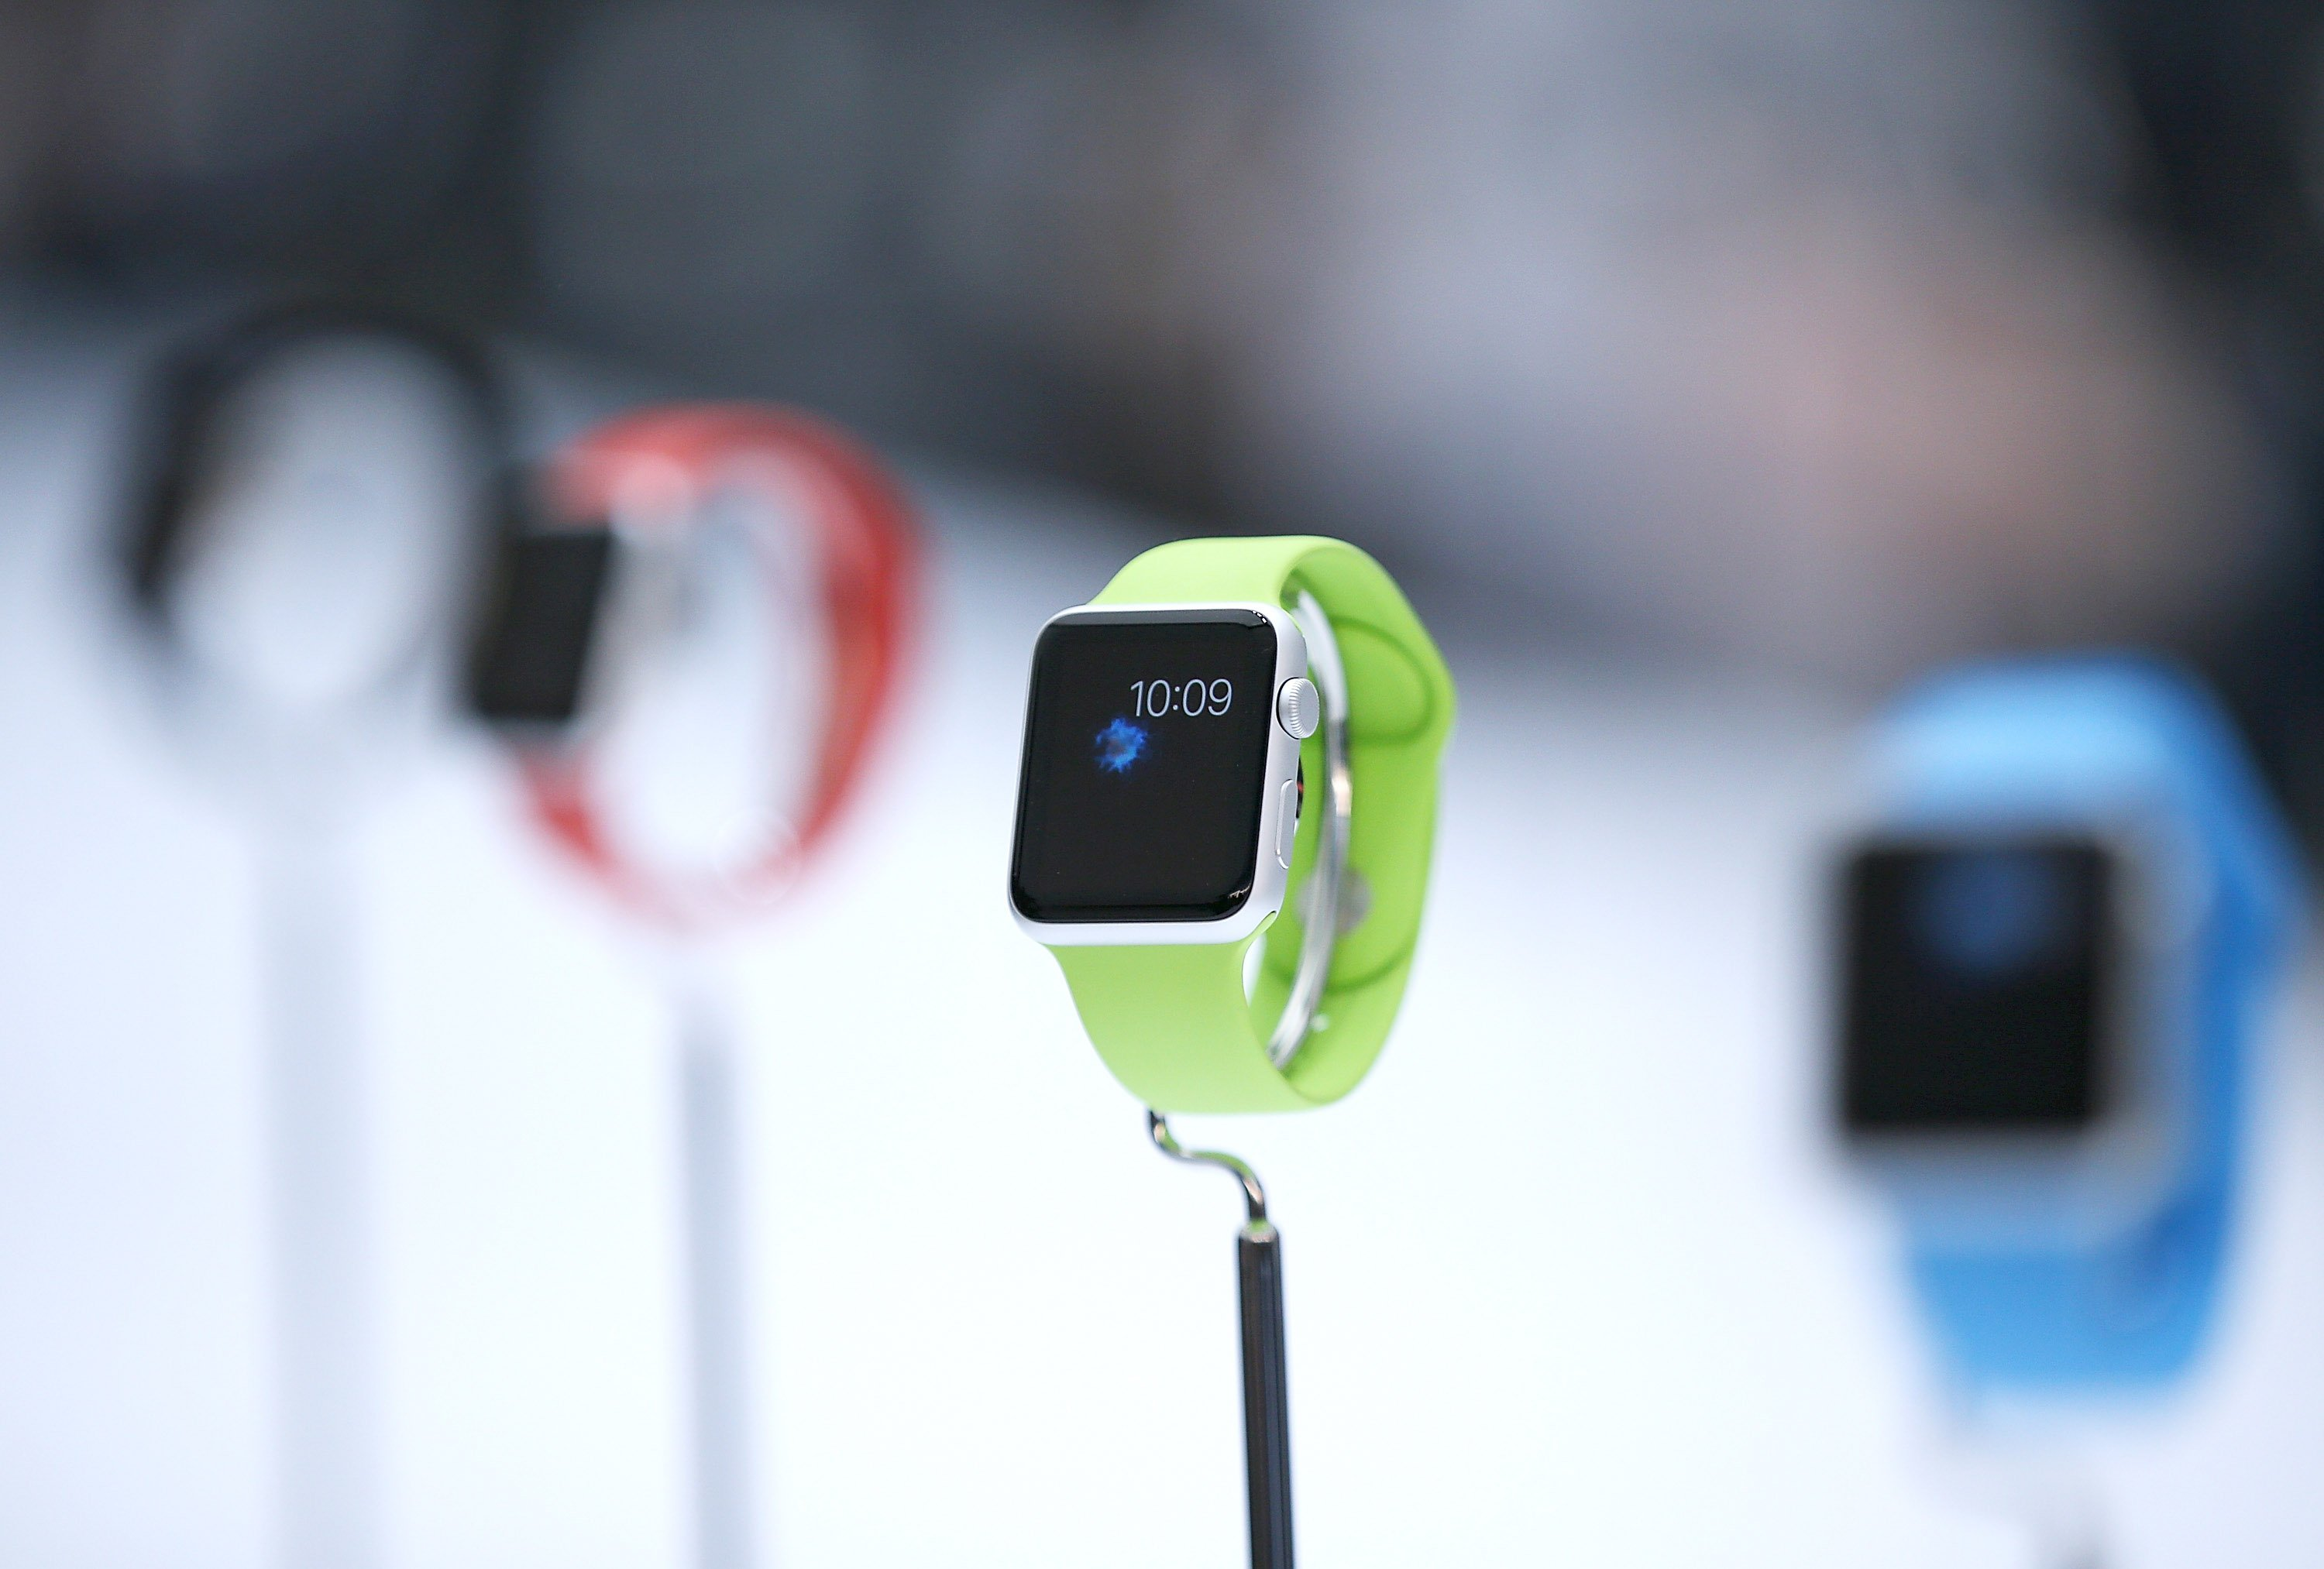 The new Apple Watch is displayed during an Apple special event at the Flint Center for the Performing Arts on Sept. 9, 2014 in Cupertino, Calif.